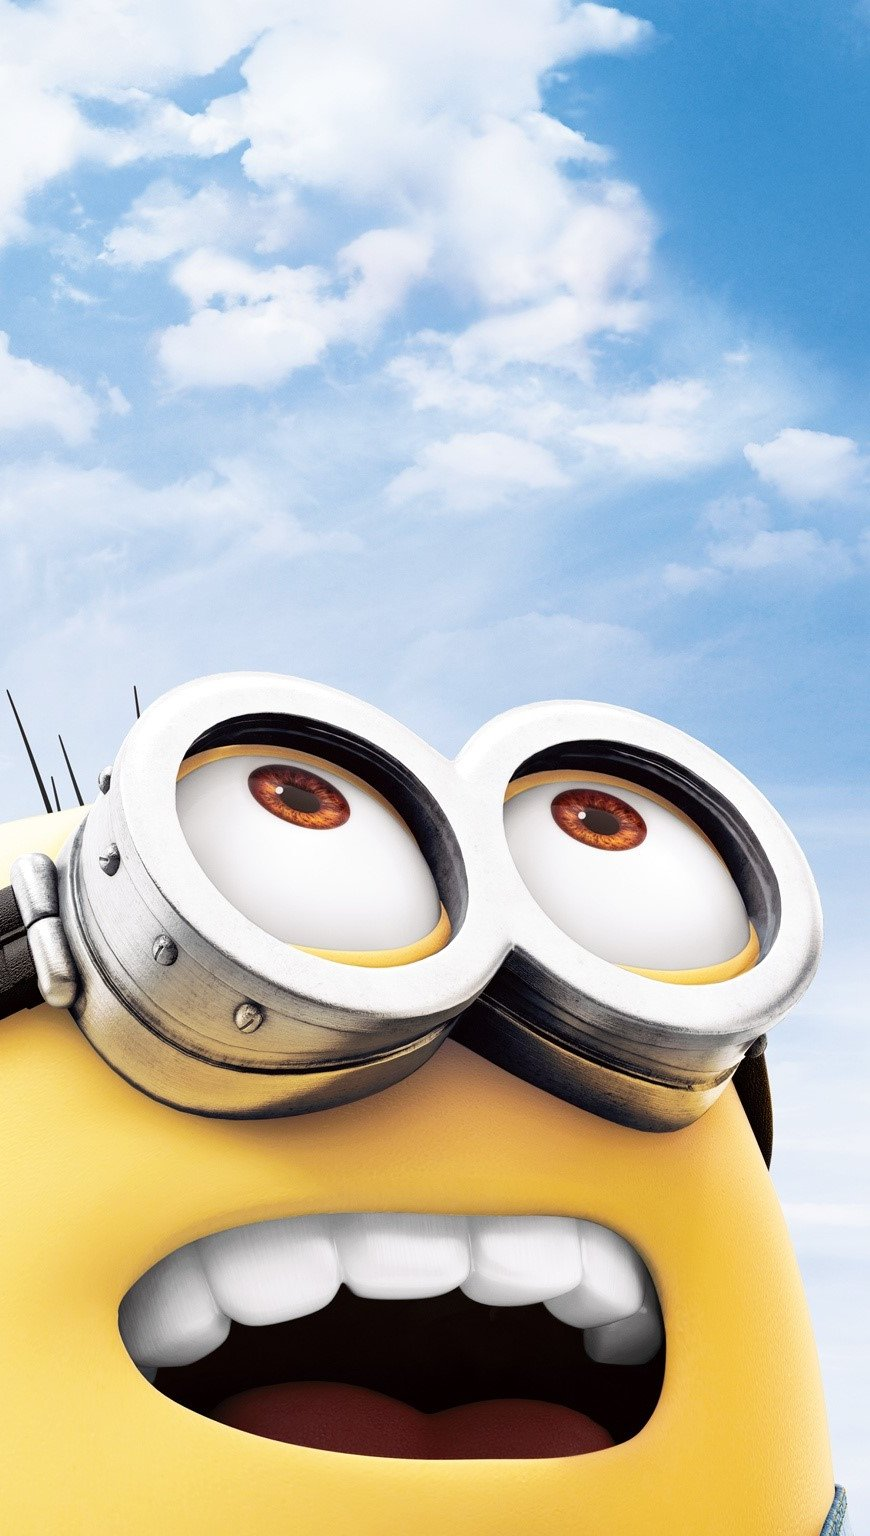 Wallpaper A minion in My favorite villain 2 Vertical